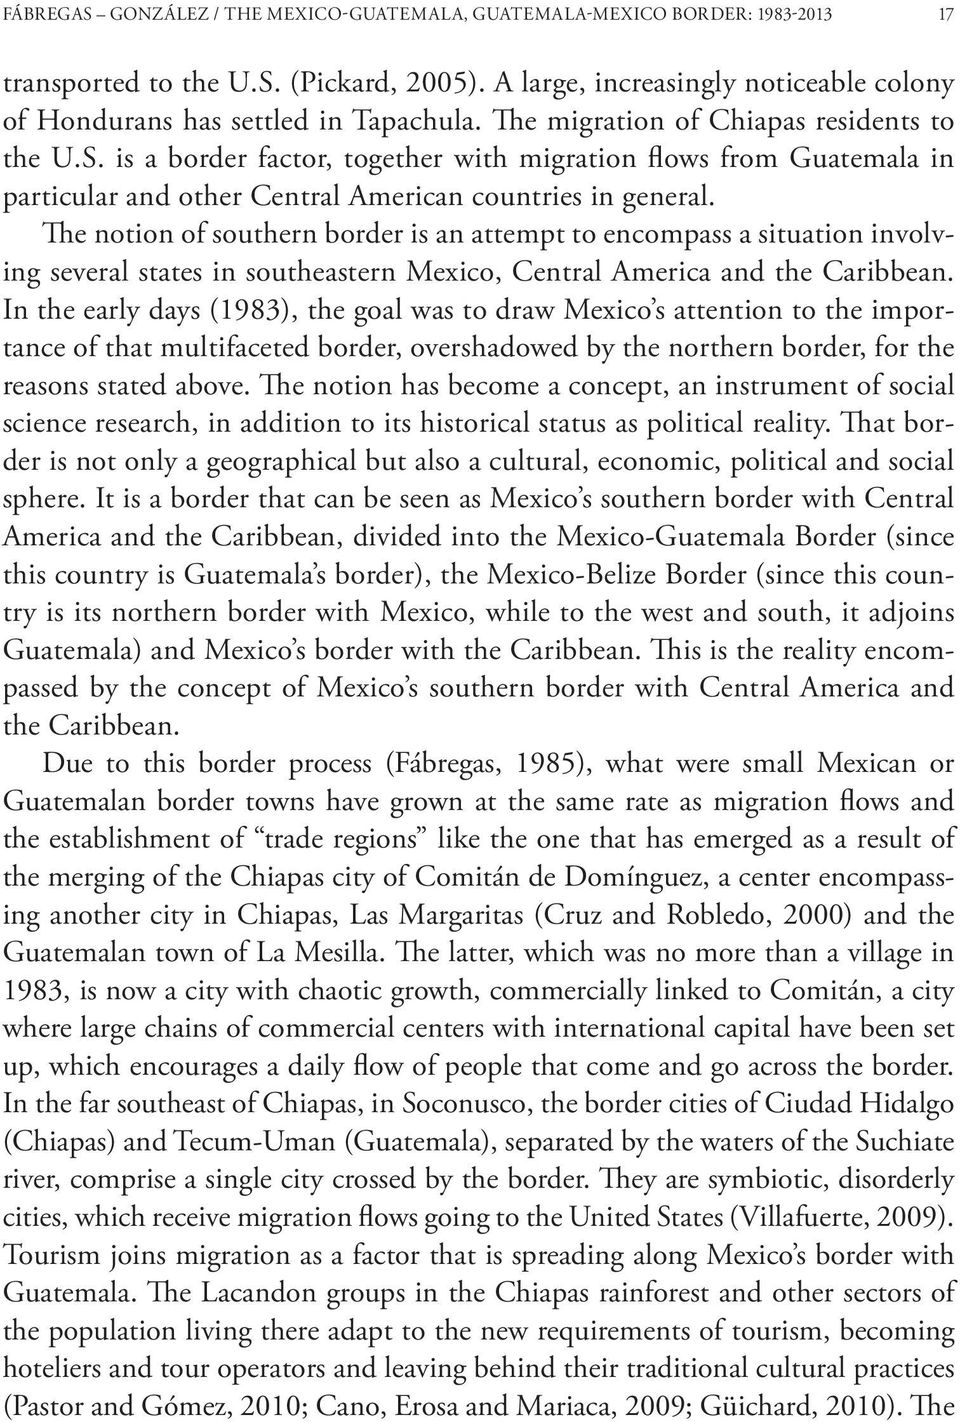 The notion of southern border is an attempt to encompass a situation involving several states in southeastern Mexico, Central America and the Caribbean.